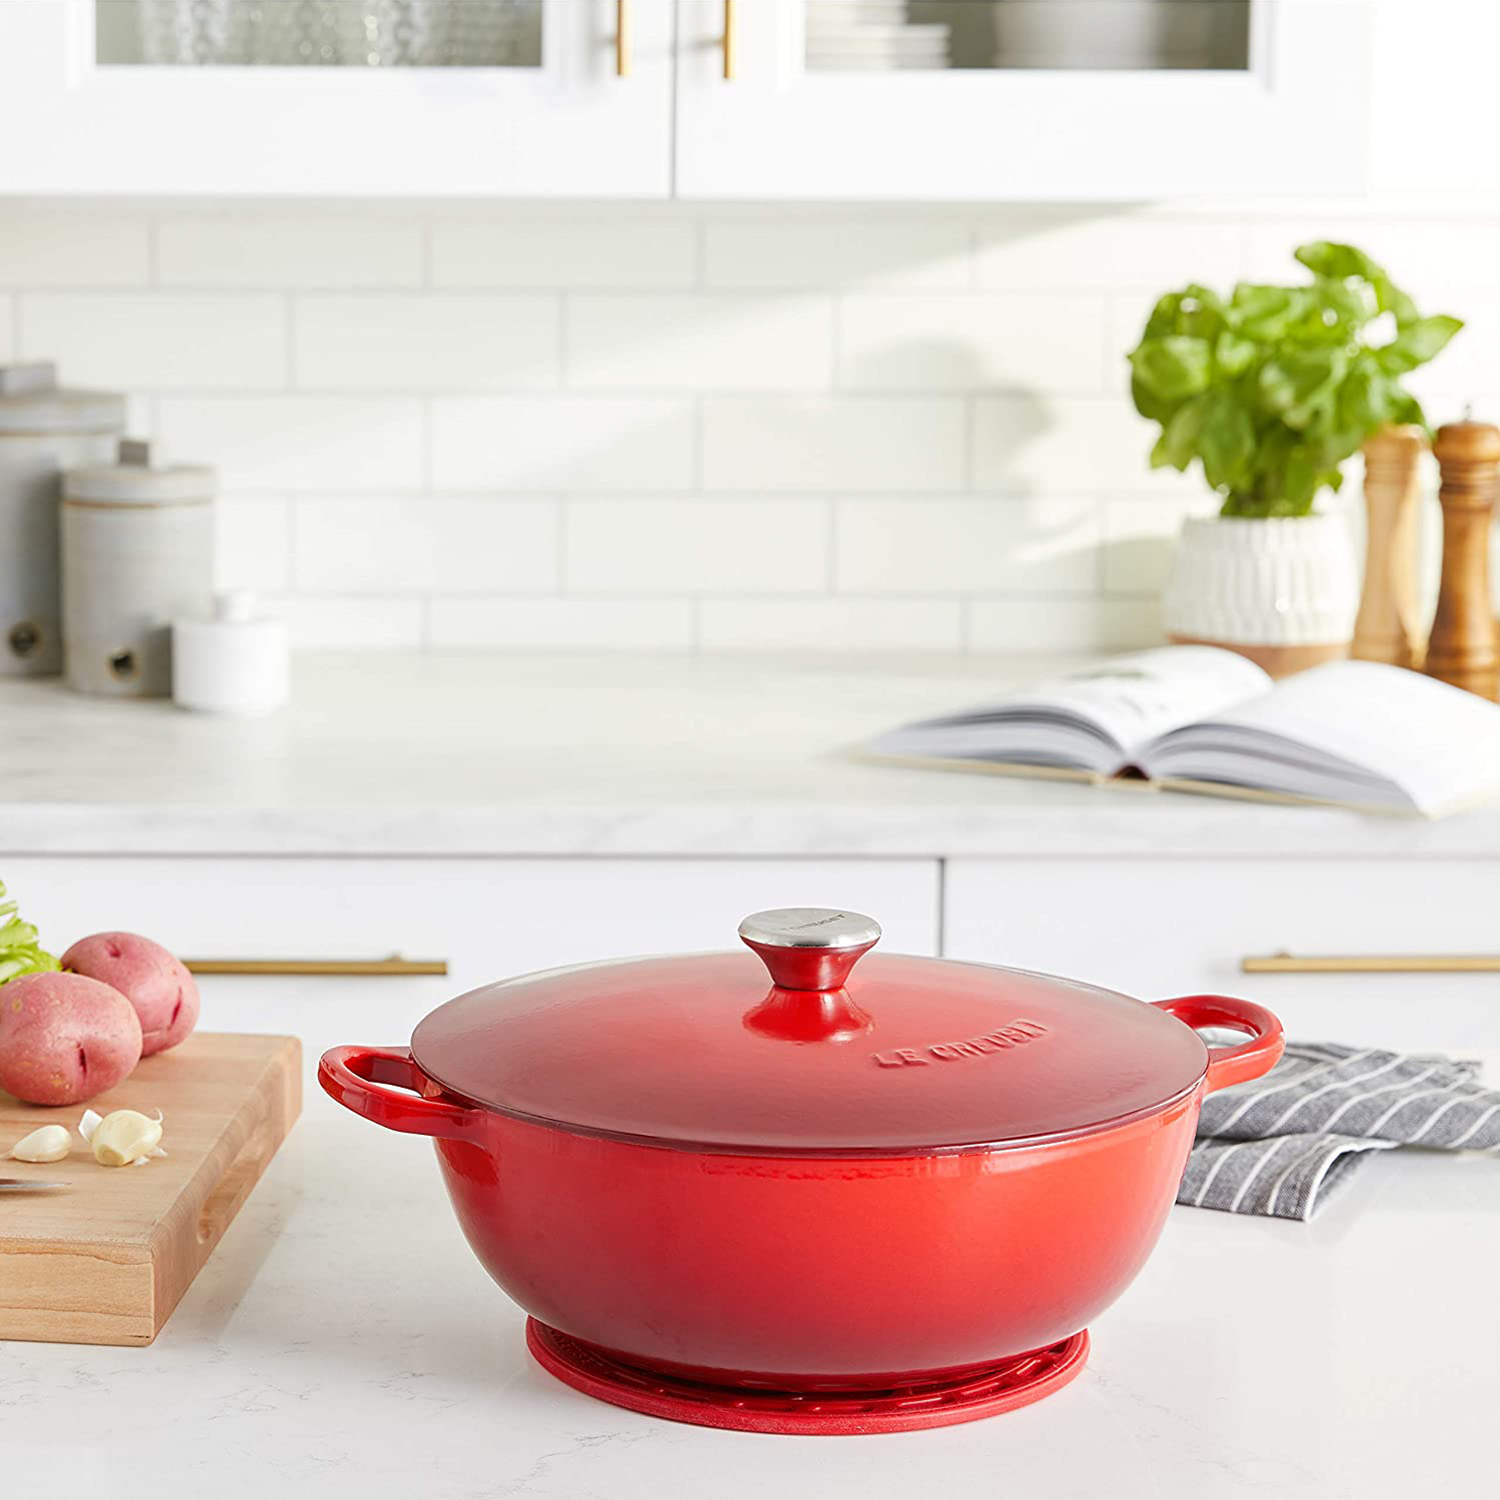 Le Creuset Enameled Cast Iron Curved Round Chef's Oven